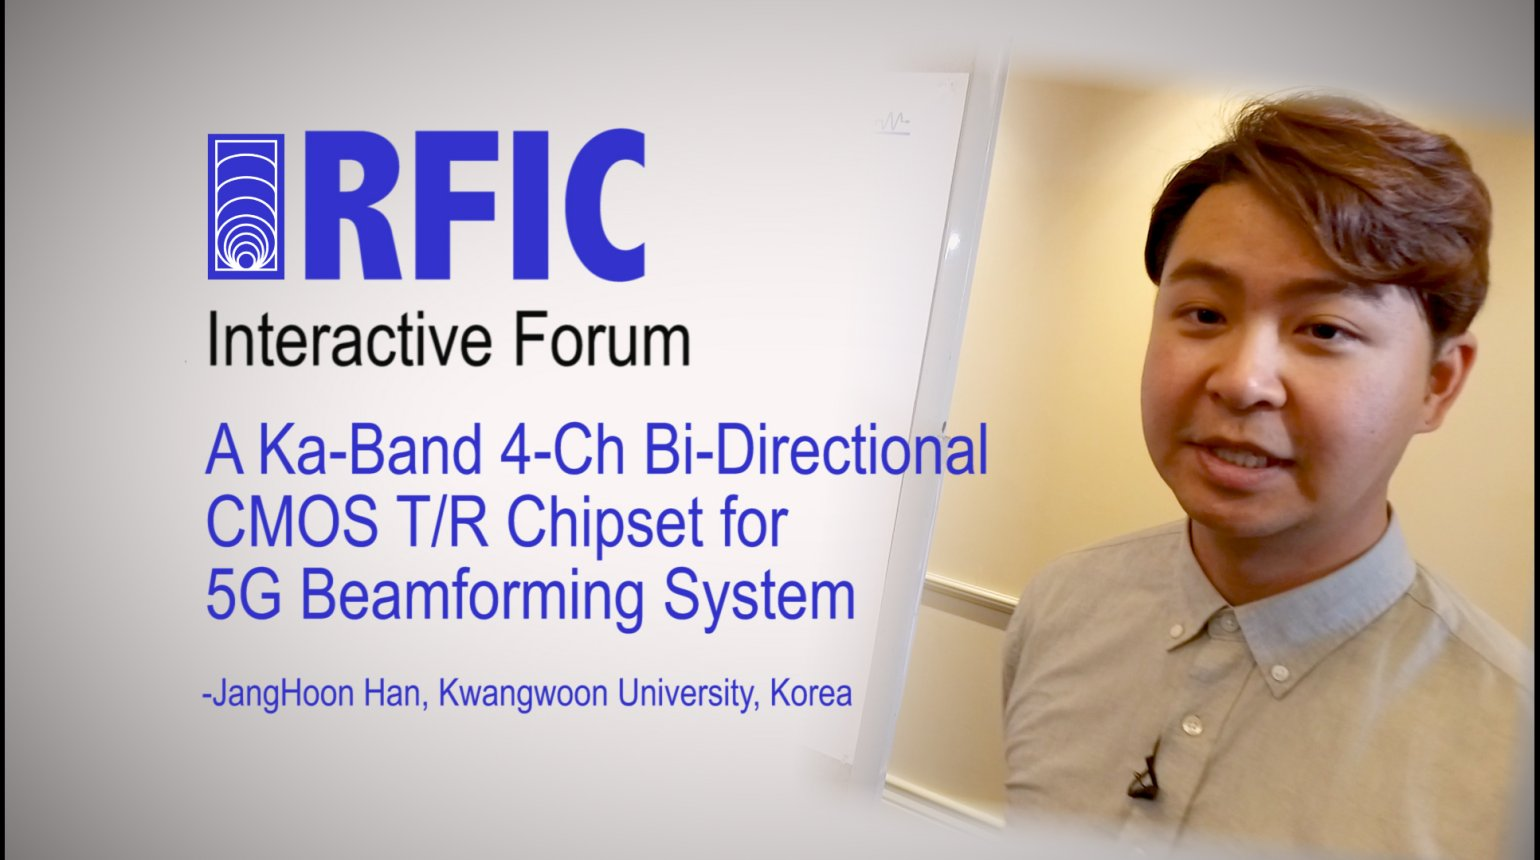 A Ka-Band 4-Ch Bi-Directional CMOS T/R Chipset for 5G Beamforming System: RFIC Interactive Forum 2017